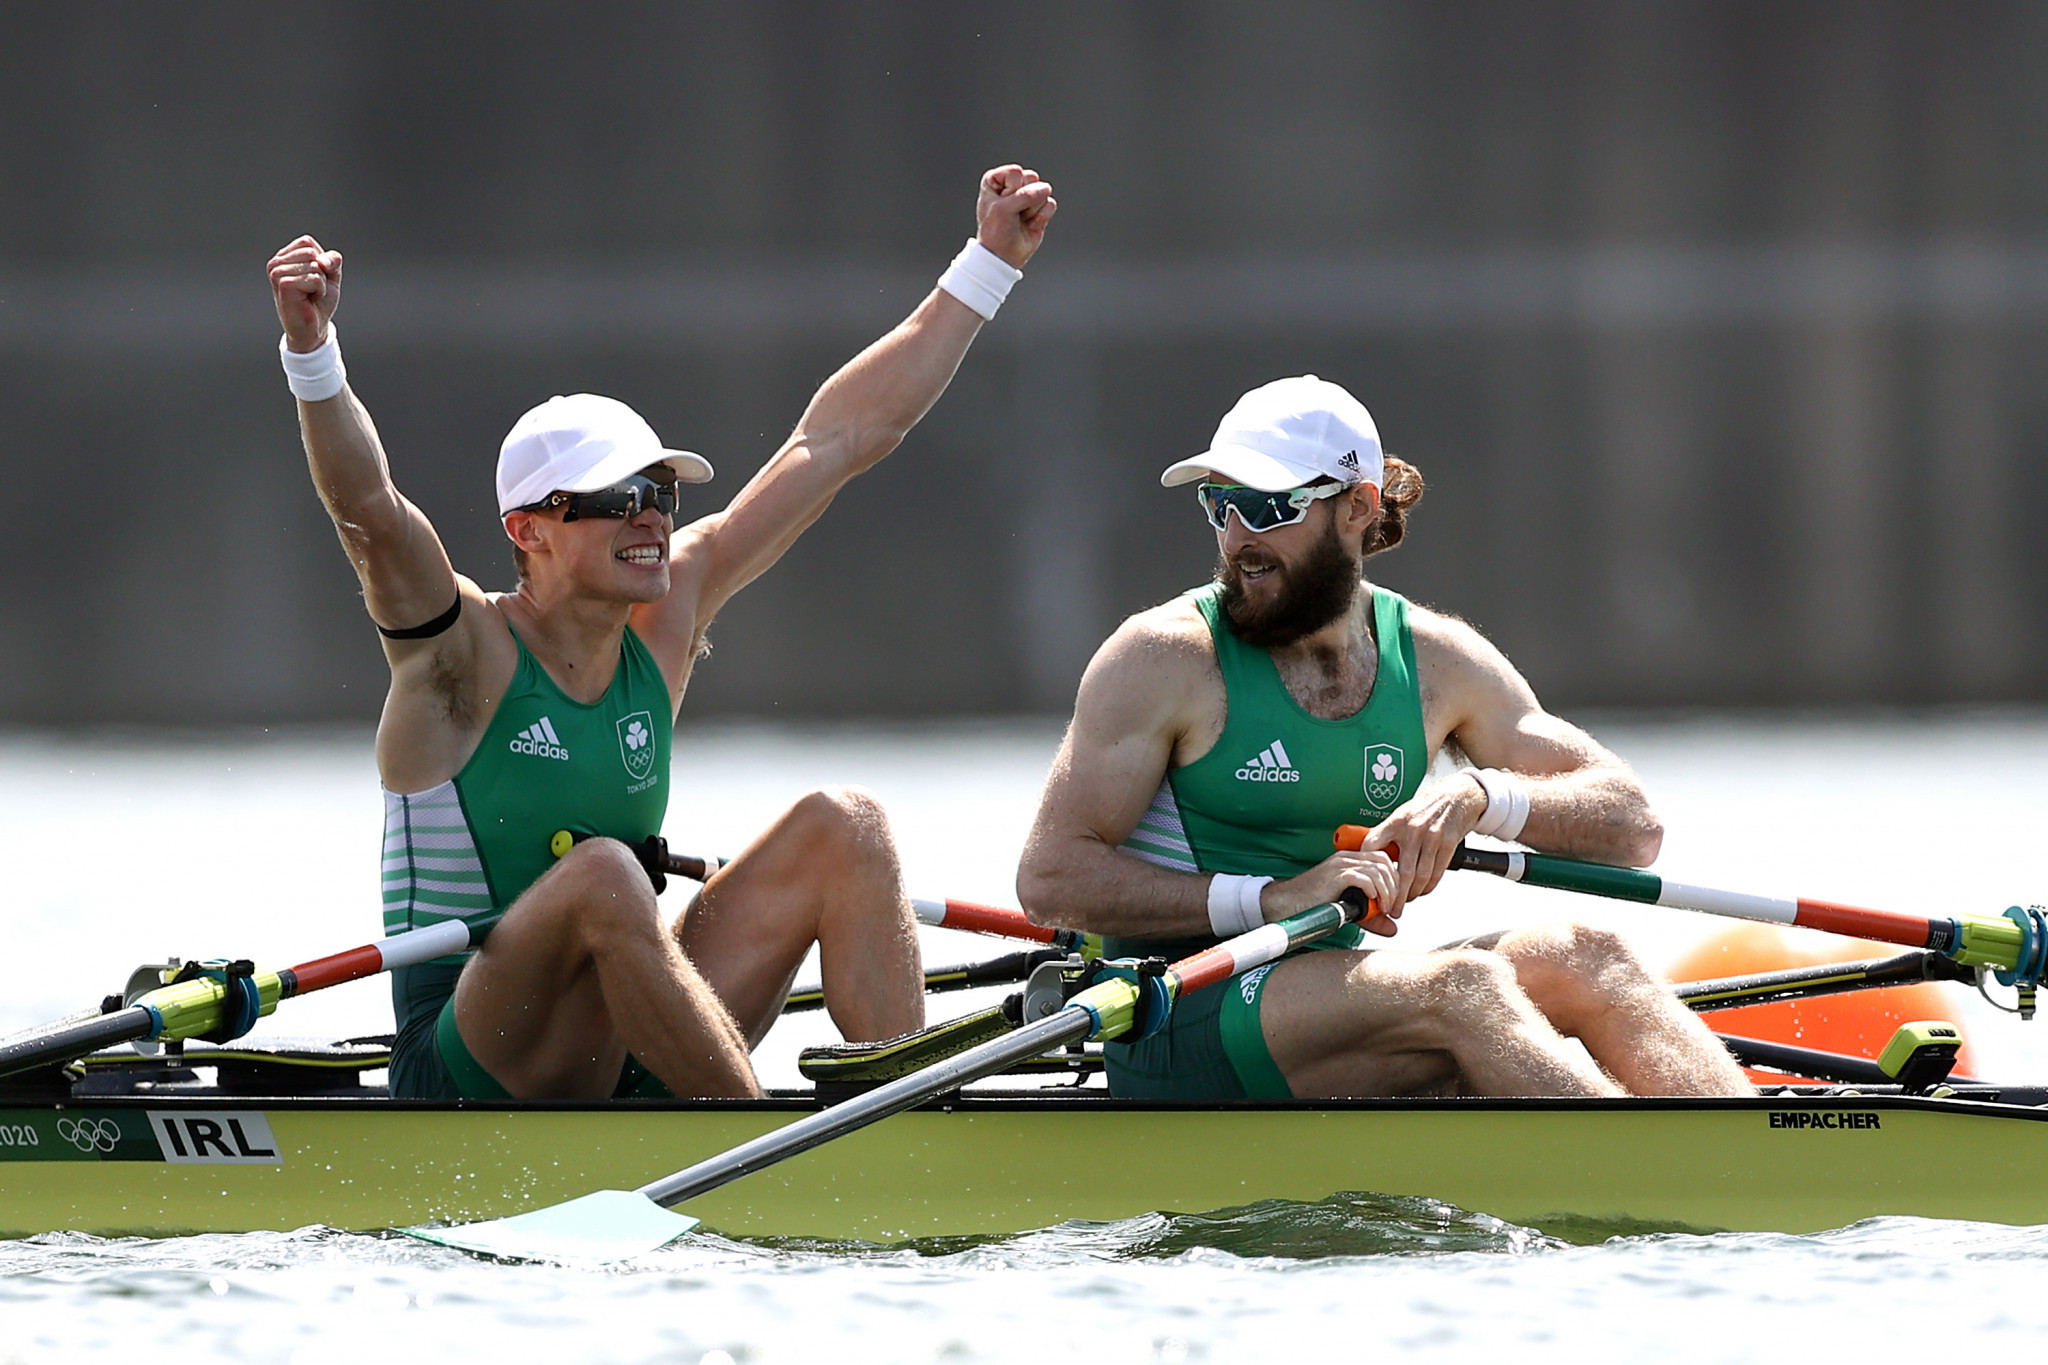 Fintan McCarthy and Paul O'Donovan became the first Irishmen to win Olympic gold since 1992, triumphing in the men's lightweight double sculls ©Getty Images